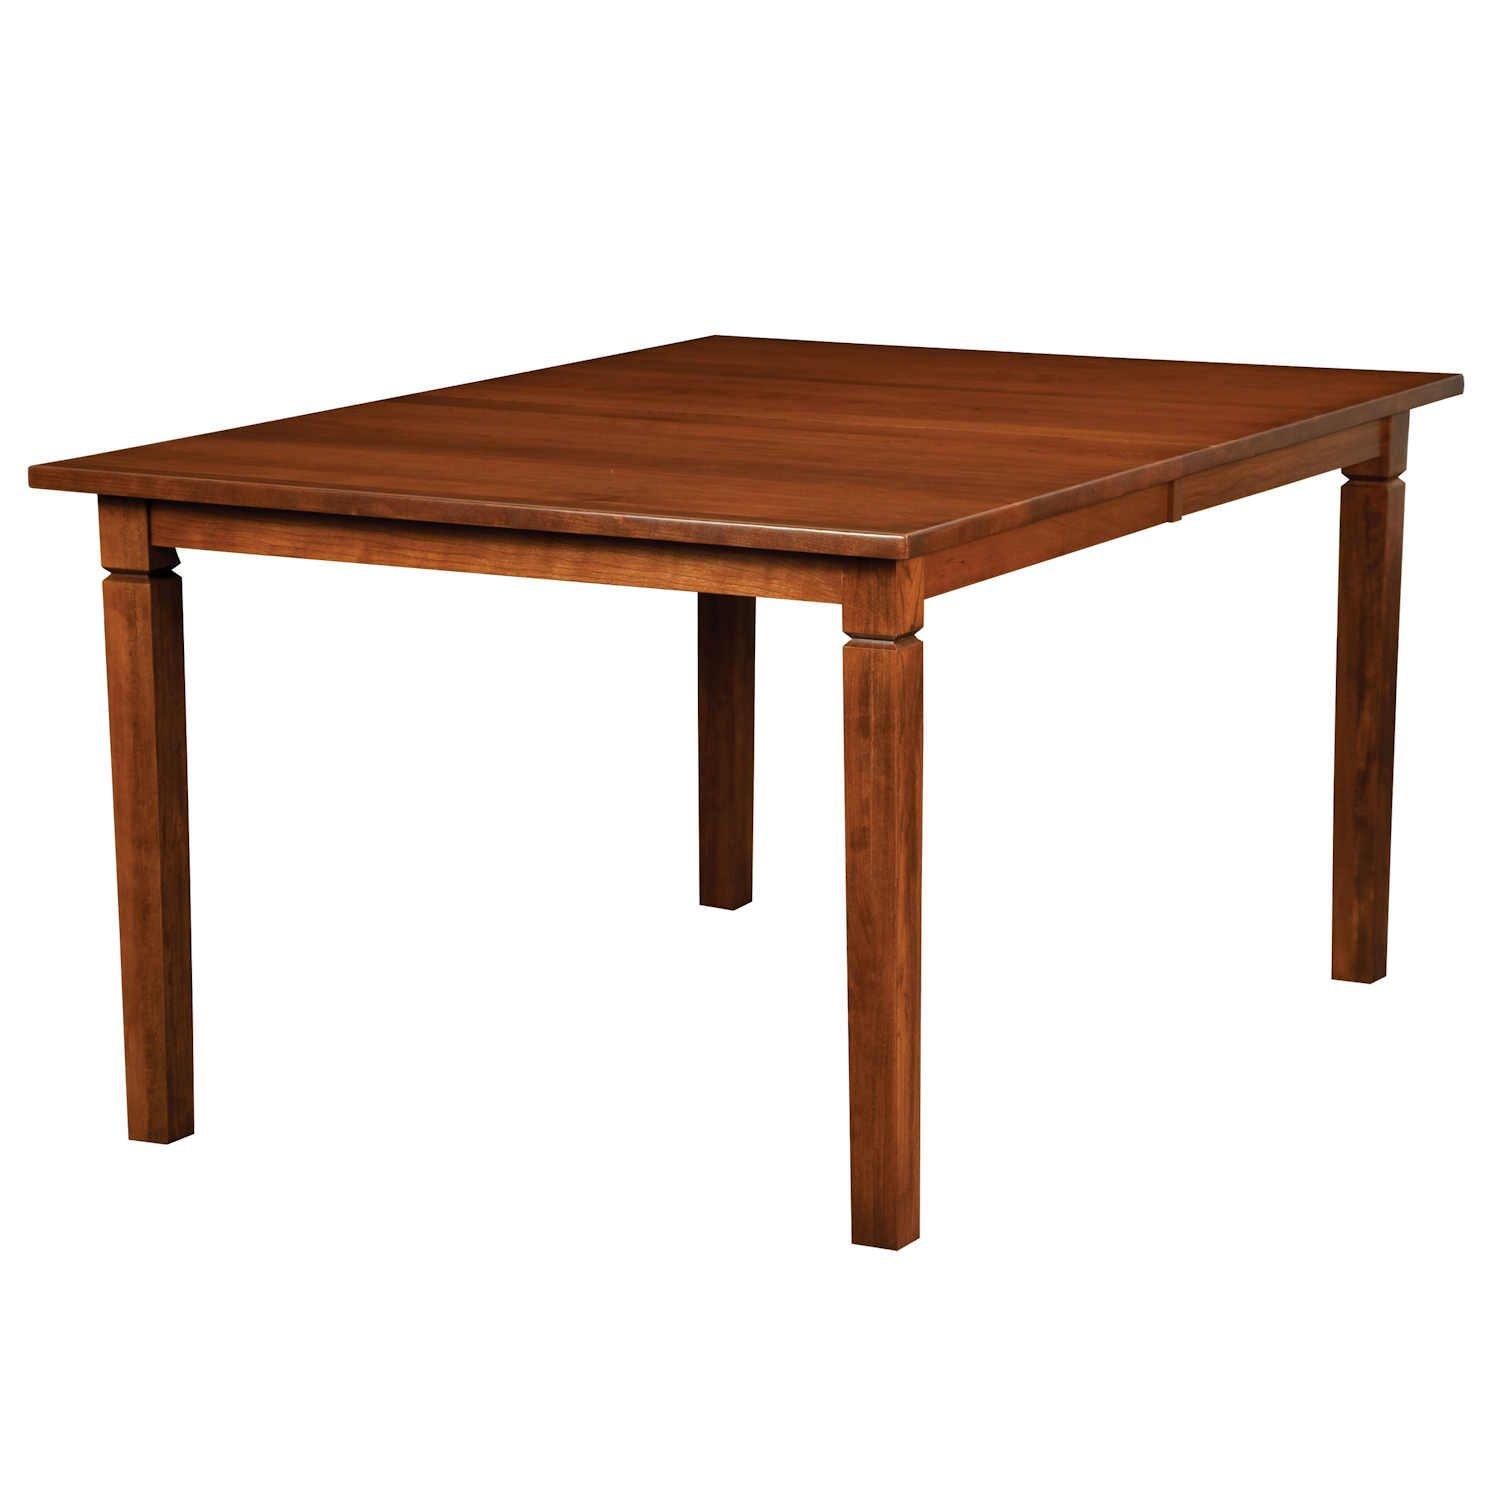 L-199 Parkland Square Dining Room Table